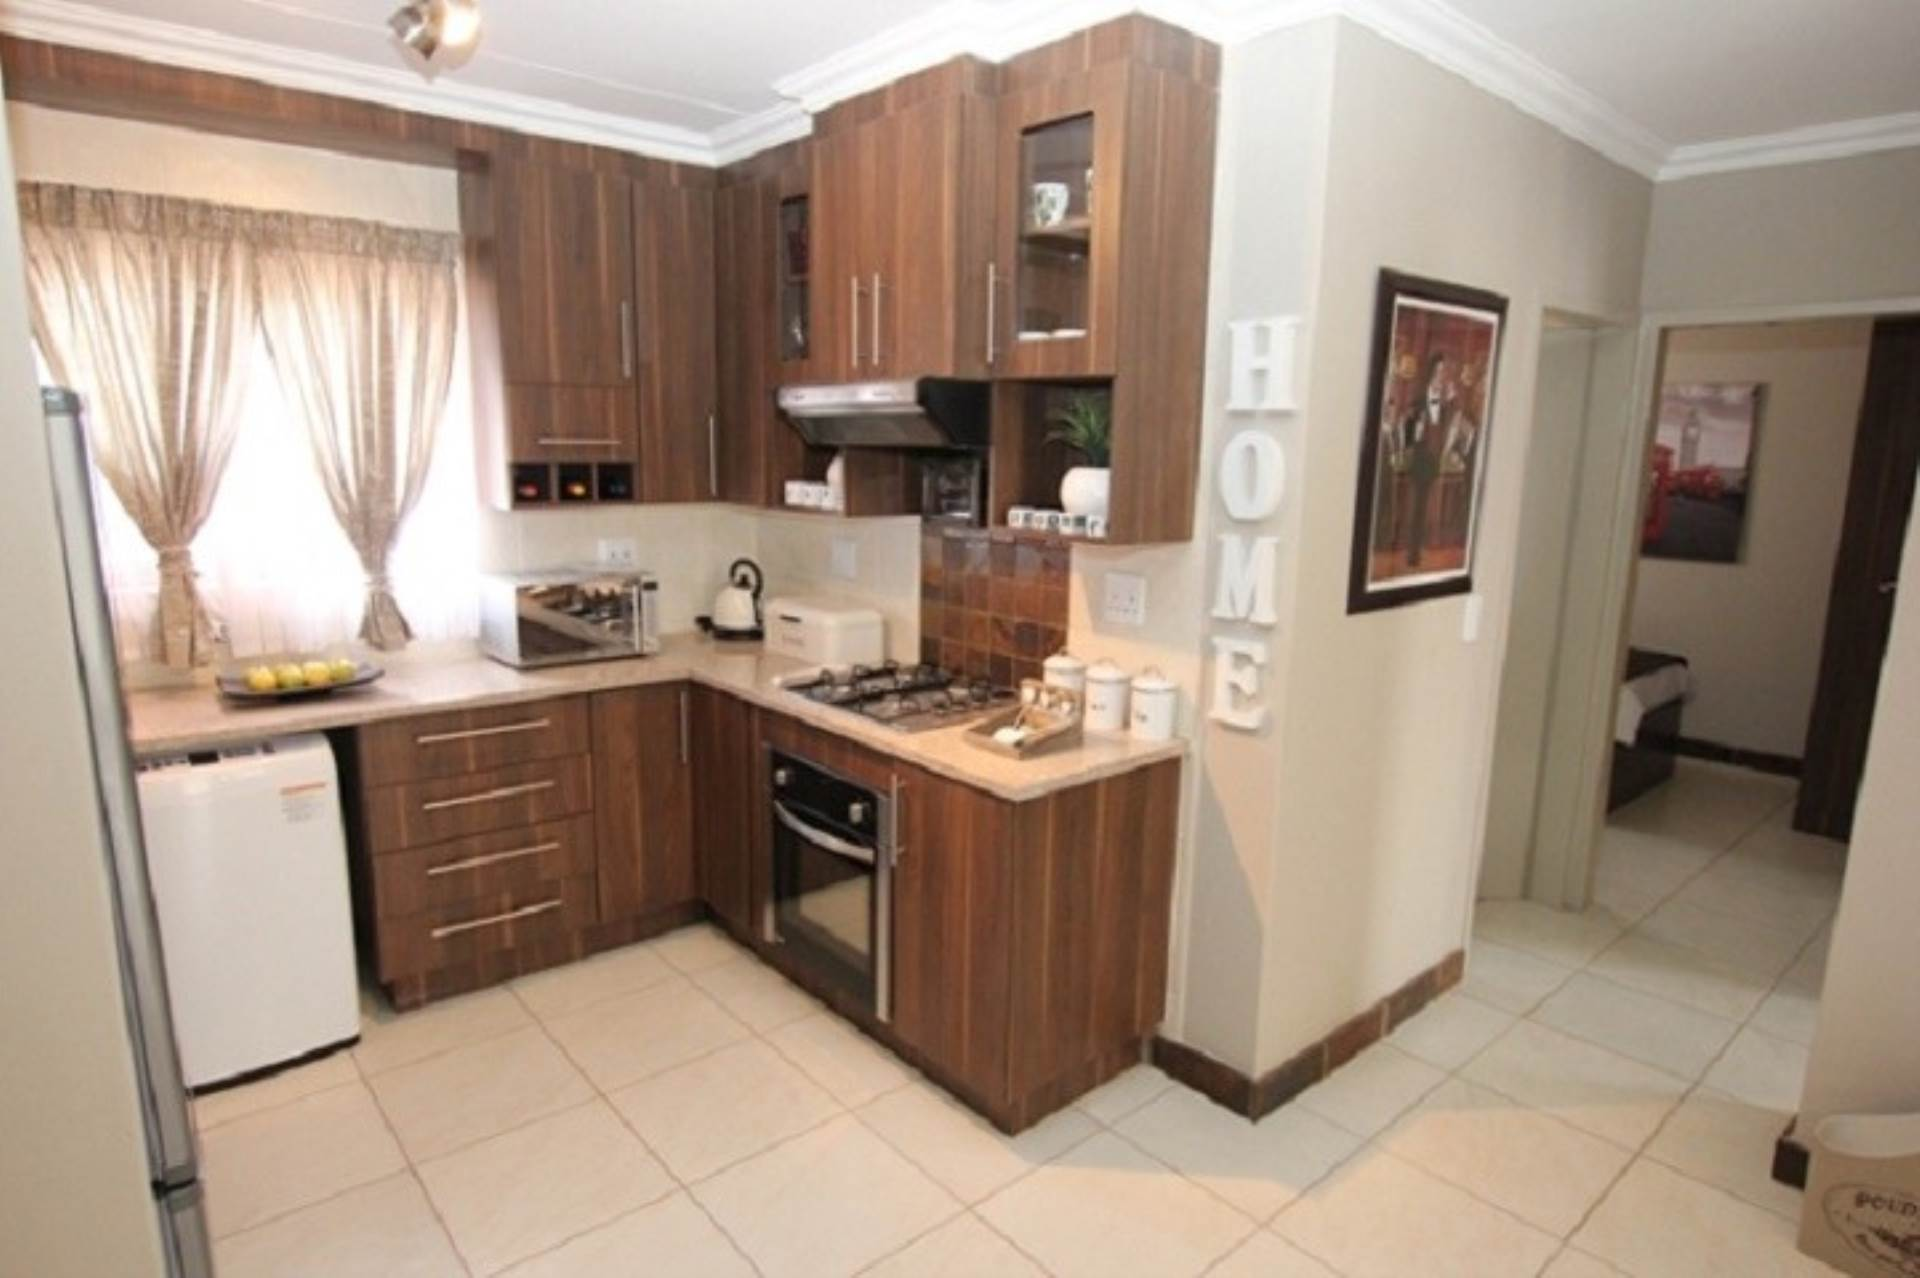 Pretoria, Daspoort Property  | Houses For Sale Daspoort, DASPOORT, Townhouse 2 bedrooms property for sale Price:682,500